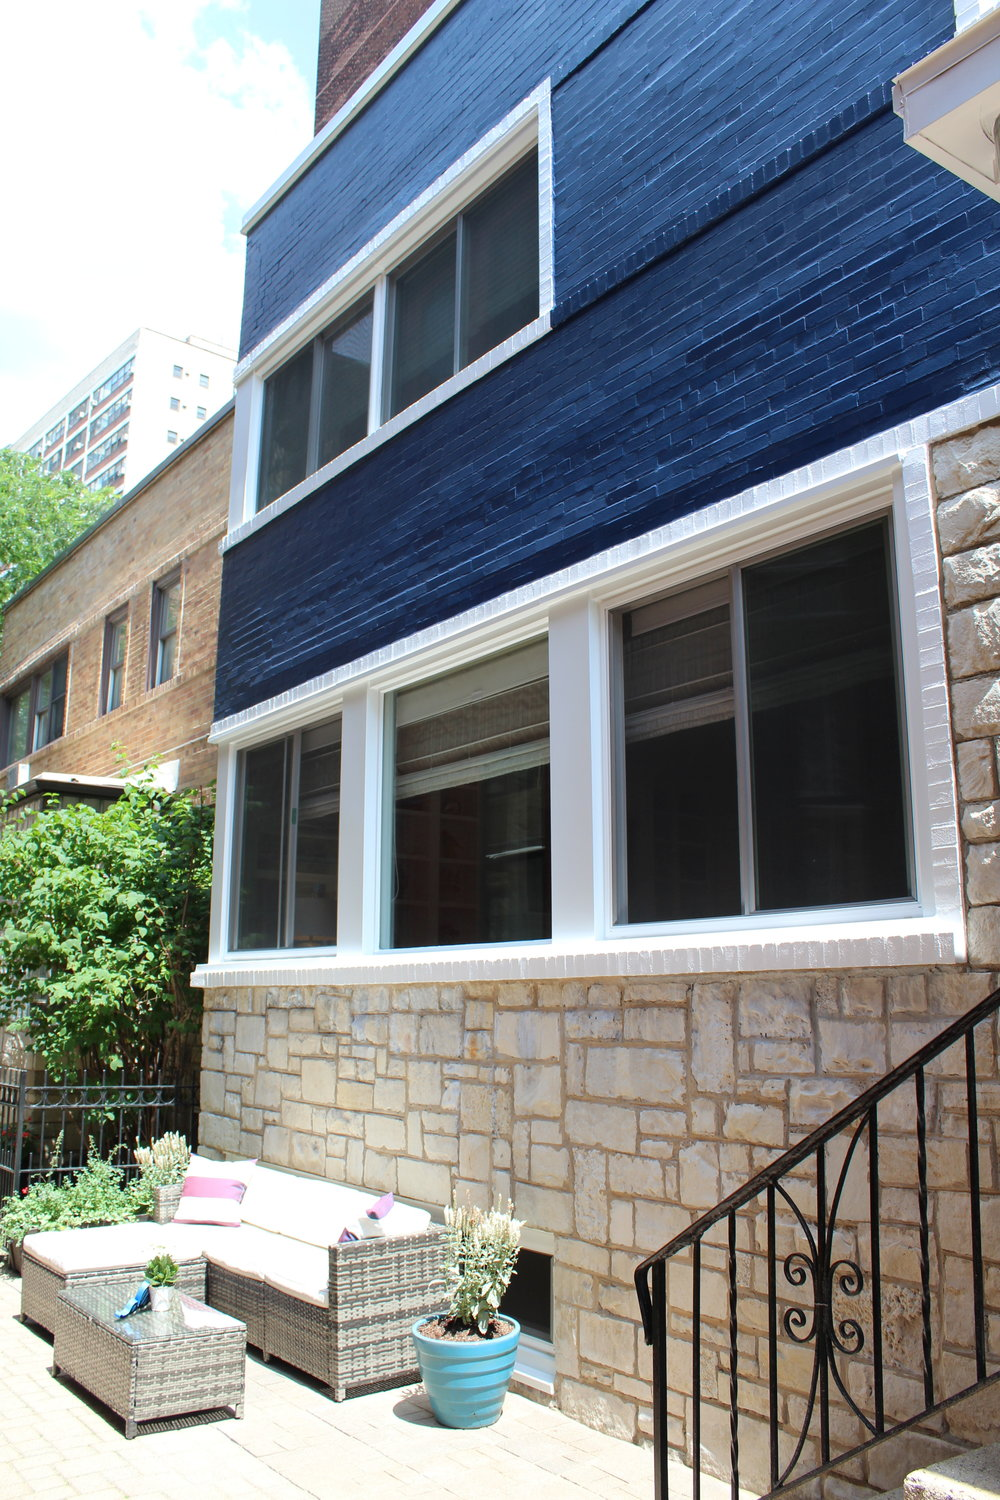 1. Navy and White Paint 2. Acid Wash Stone 3. New Windows